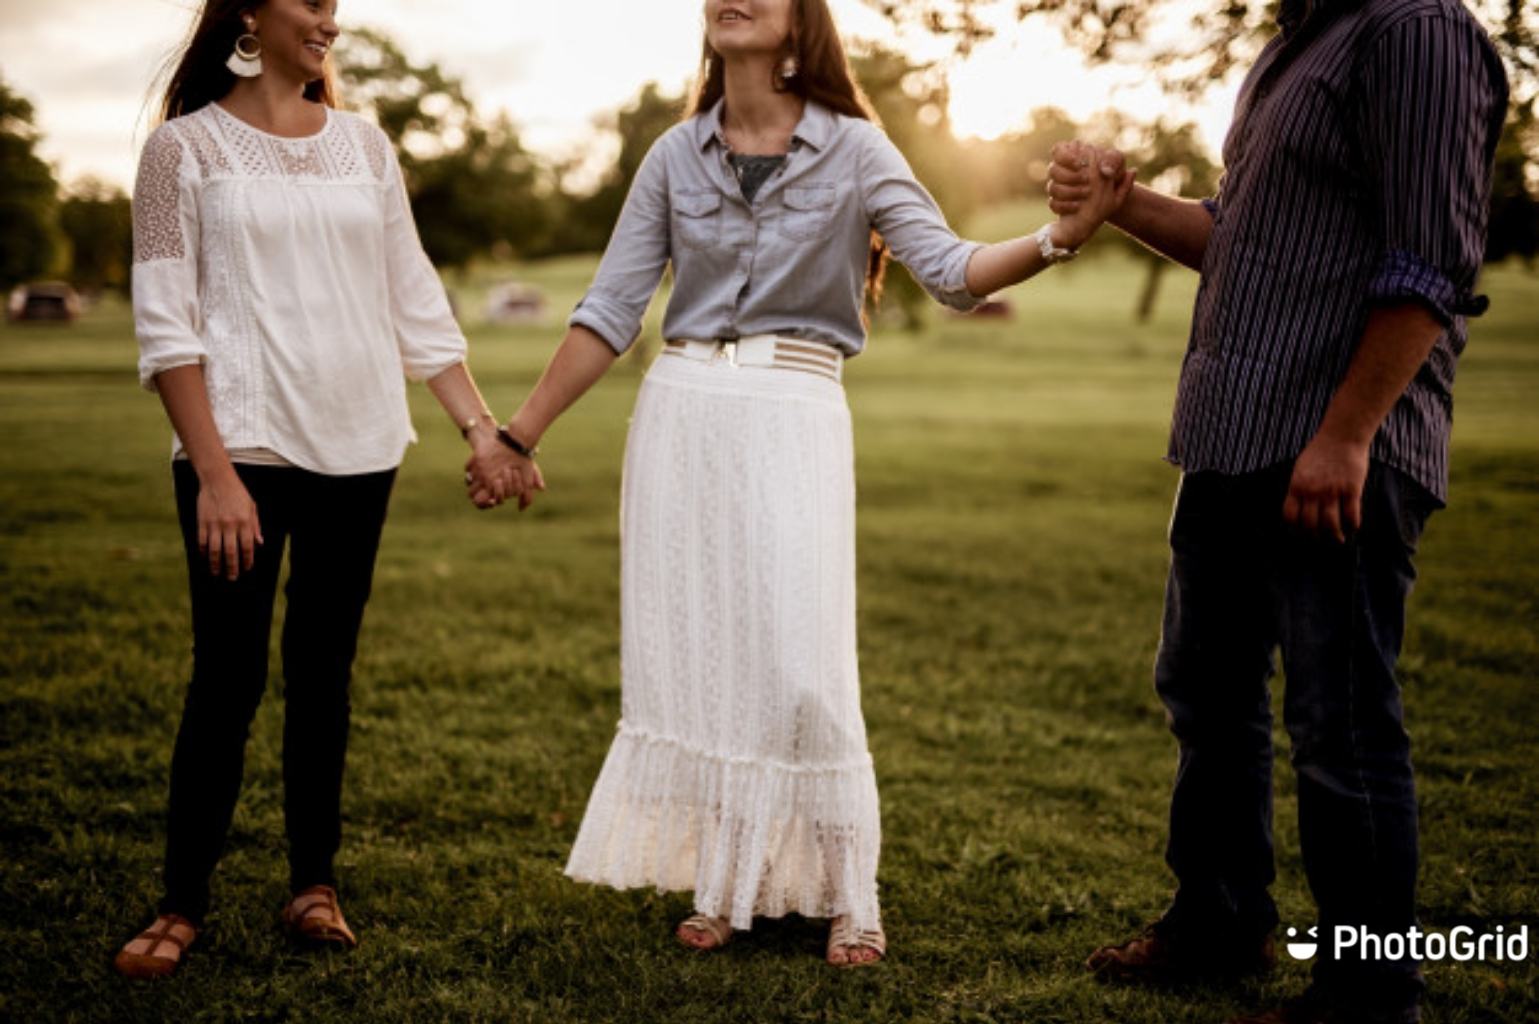 3 Reasons We Need to Empower Women for Ministry – Stacey Monaco